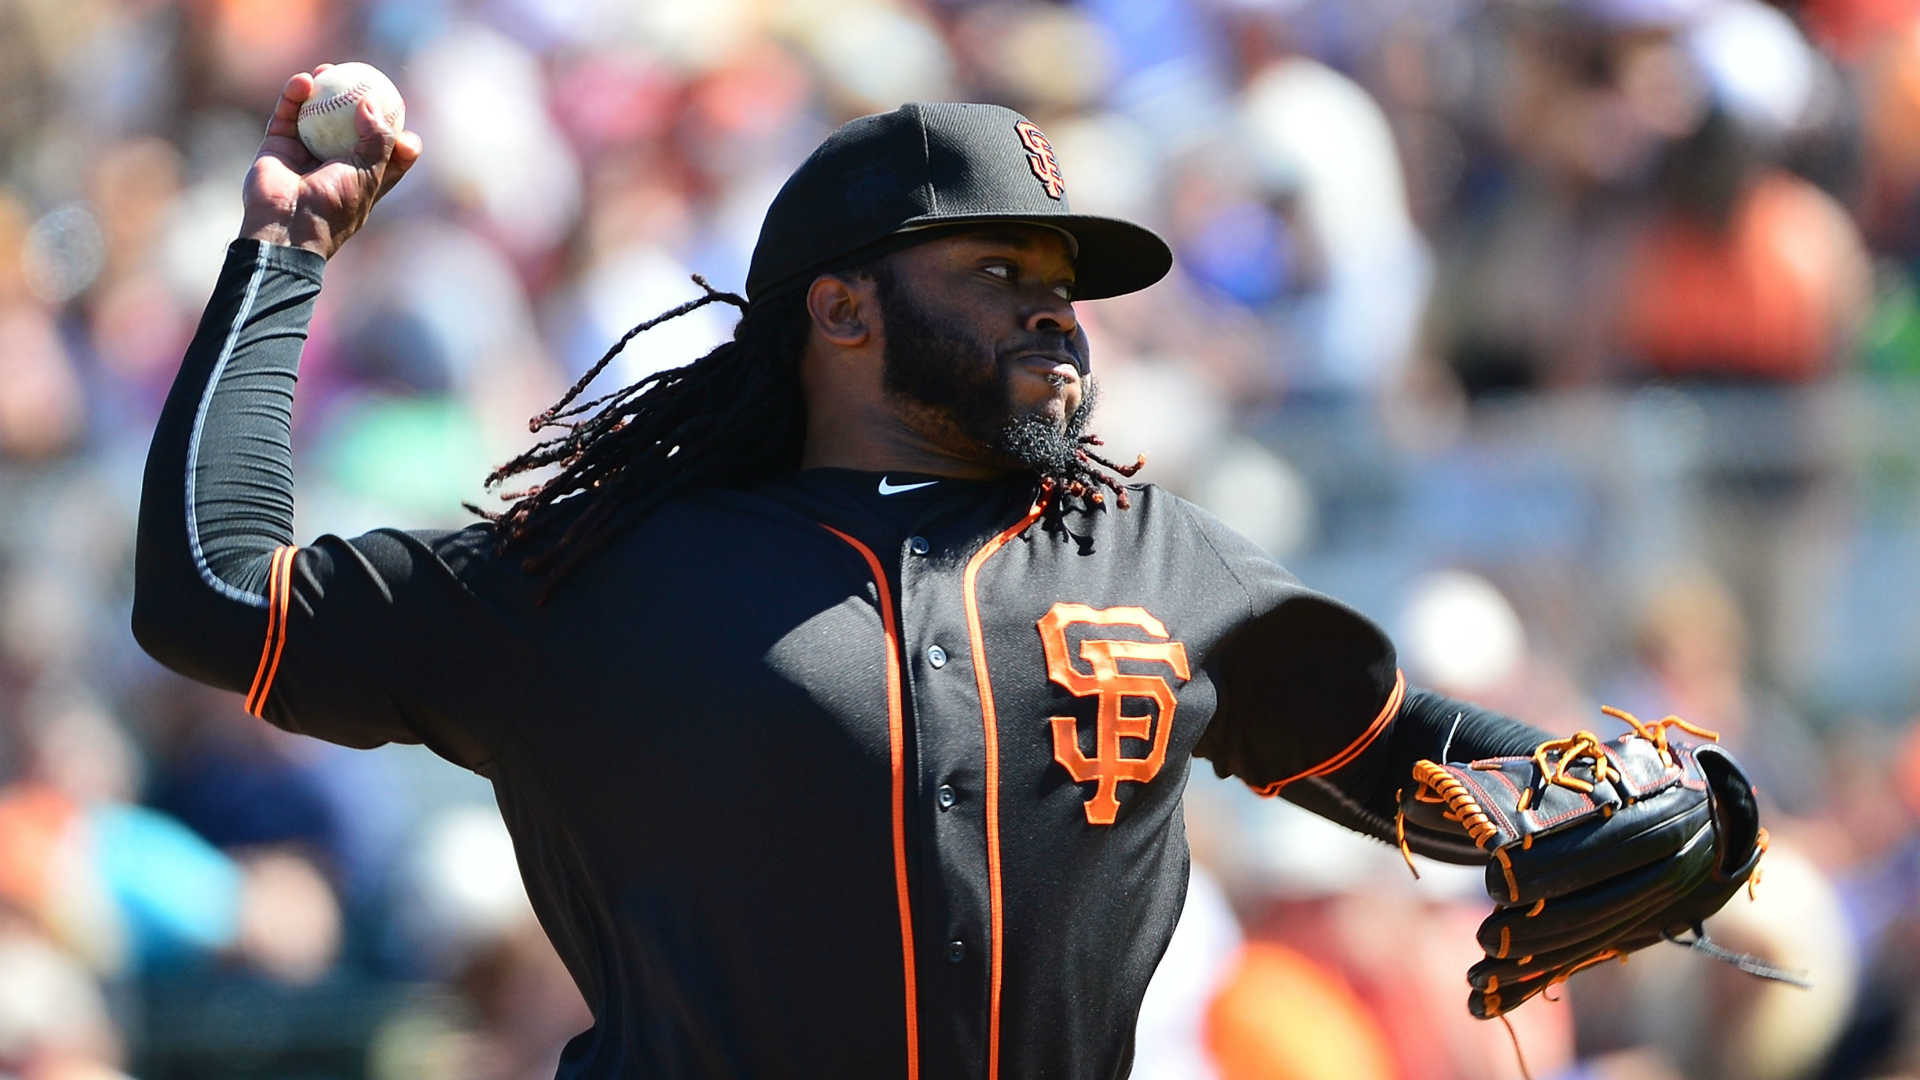 Johnny Cueto injury update: Giants starter to miss six weeks, report says